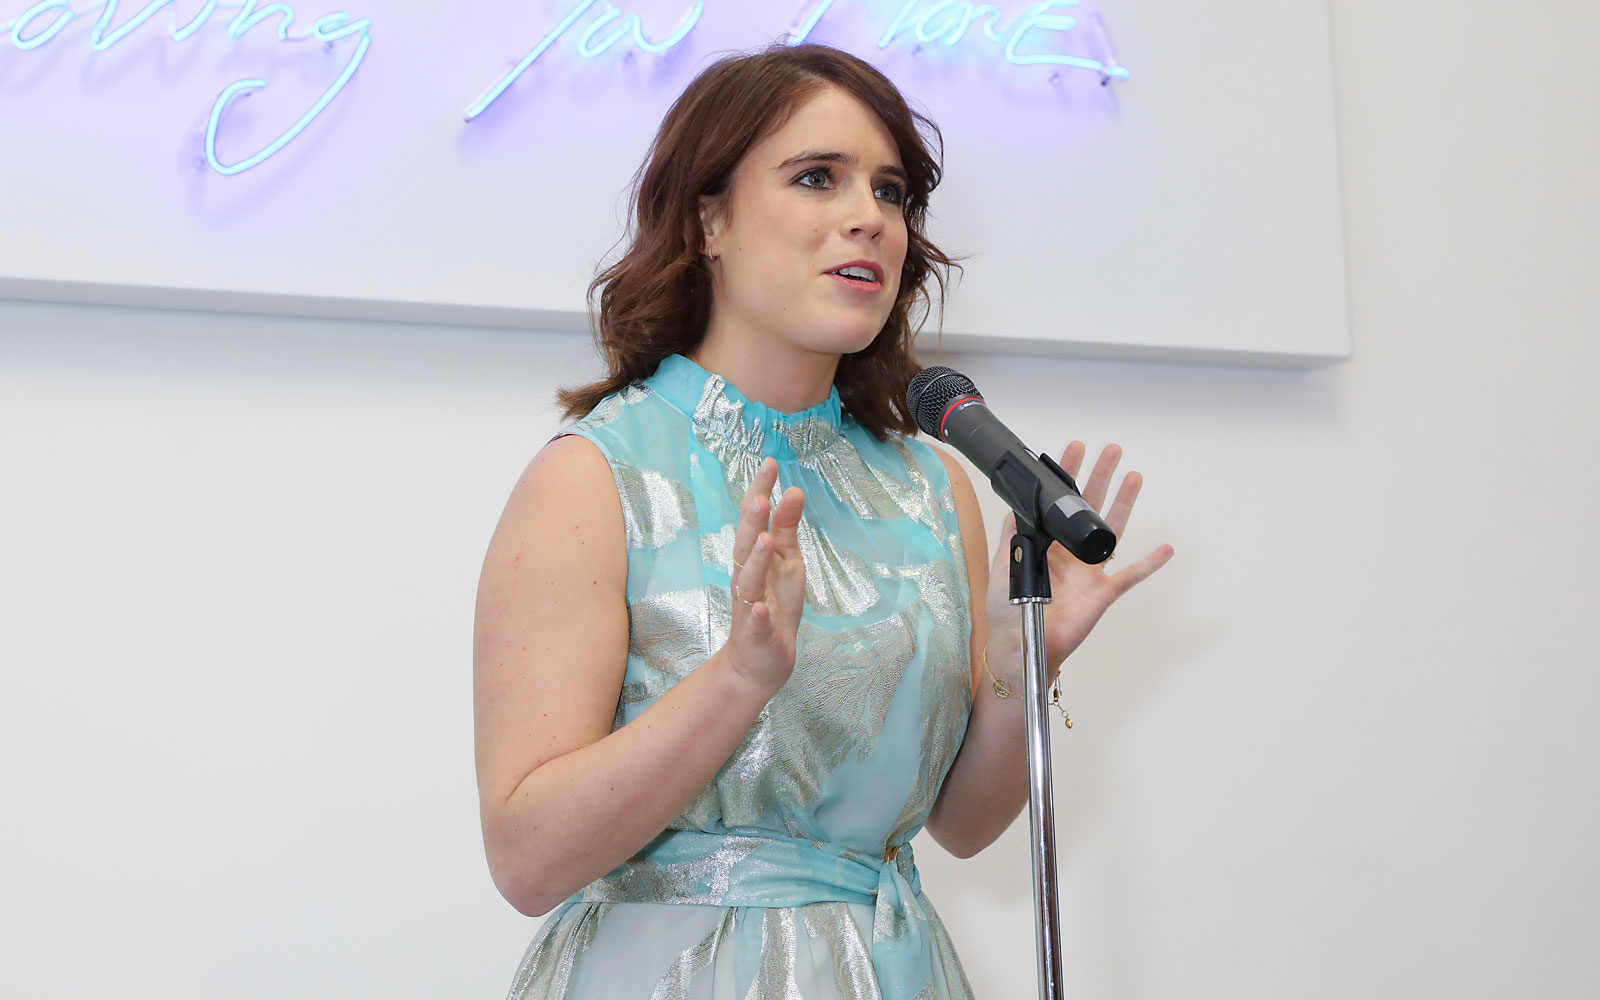 Princess Eugenie is launching the royal family's first podcast